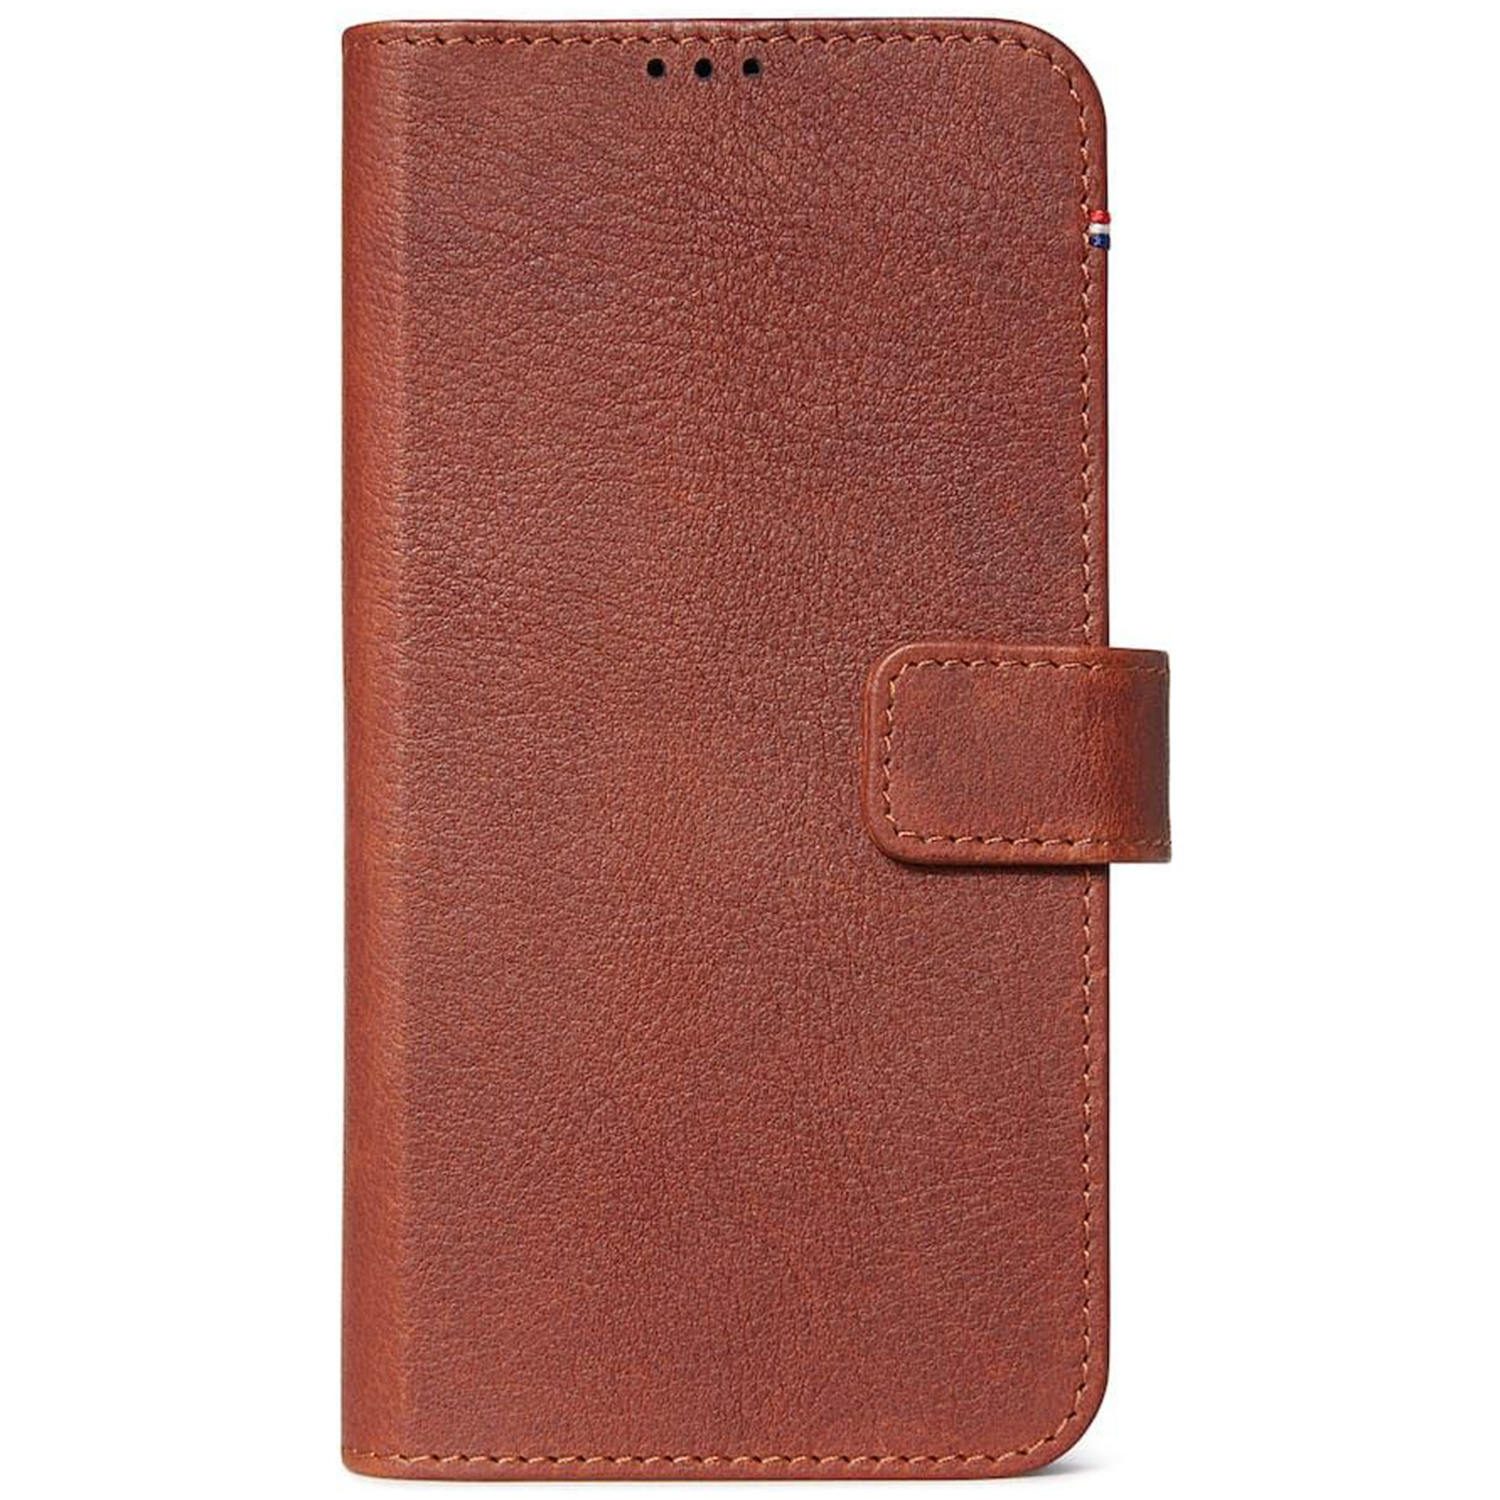 Decoded 2 in 1 Leather Booktype Braun iPhone 11